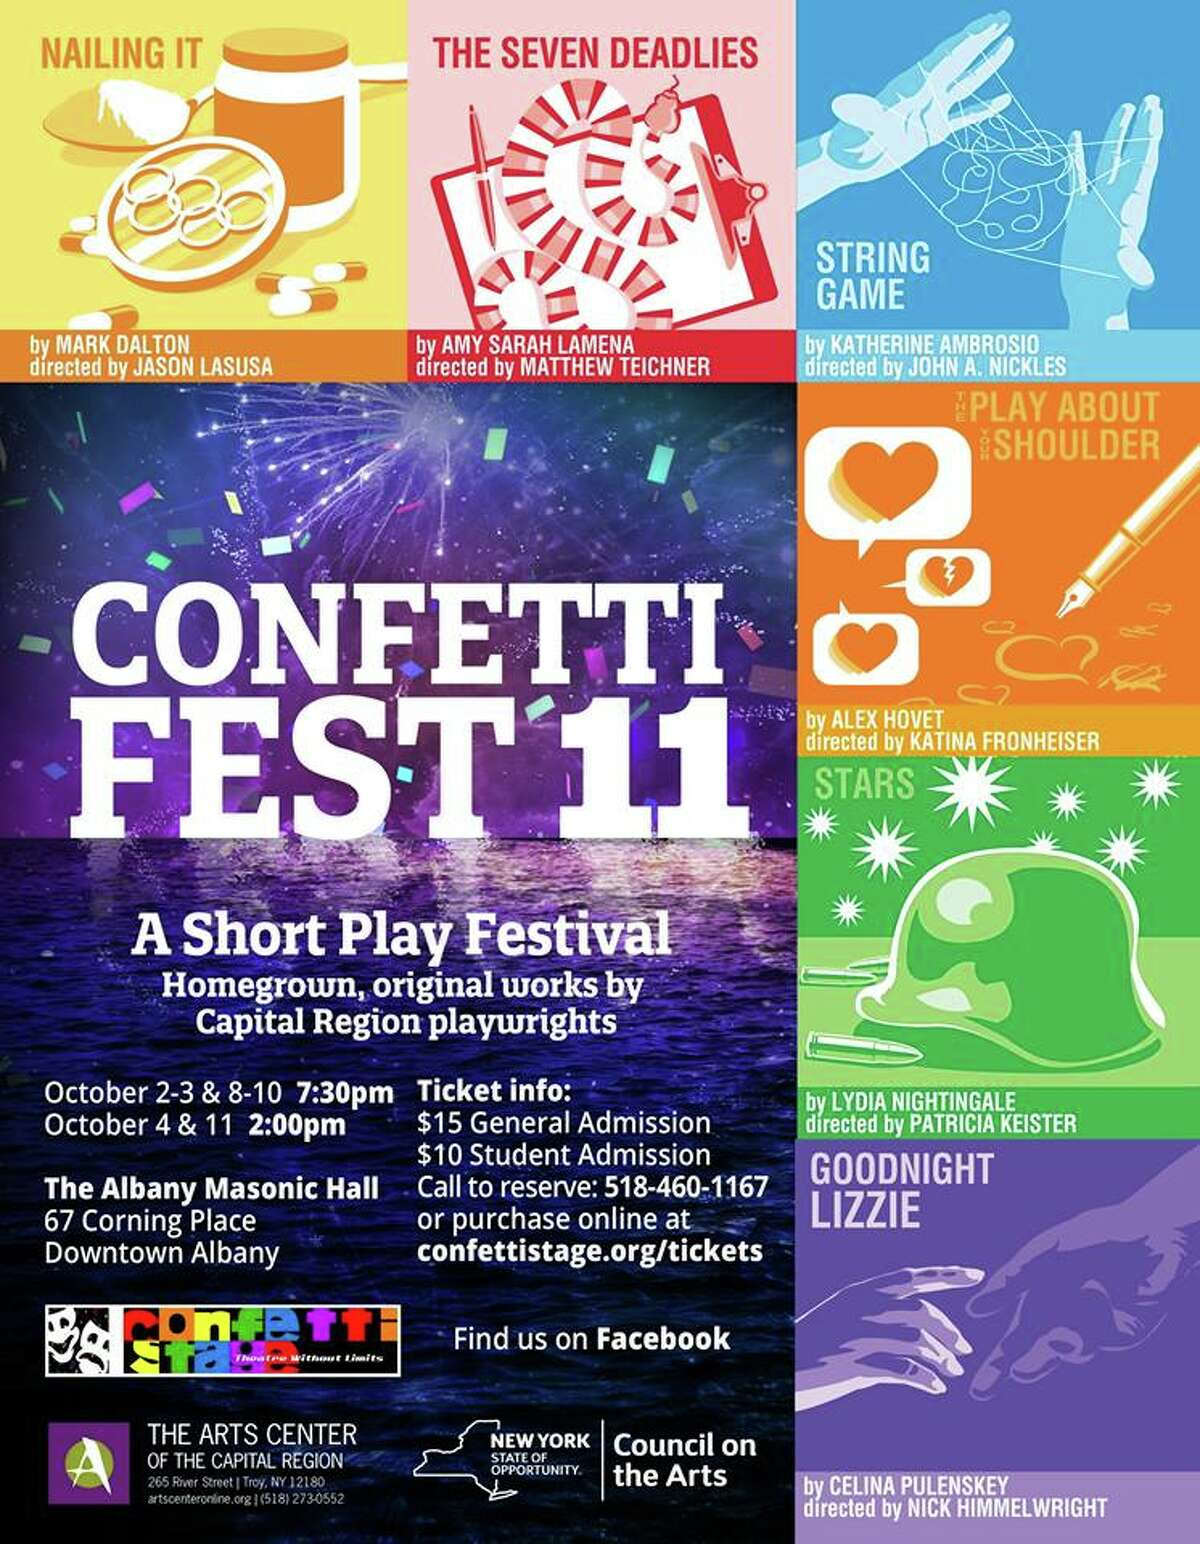 Confetti Fest 11 is a Capital Region short play festival which features only original works by local playwrights. When: Friday, Oct. 2, 7:30 p.m. Where: Albany Masonic Hall, 67 Corning Place, Albany. For tickets and more info, visit the website.